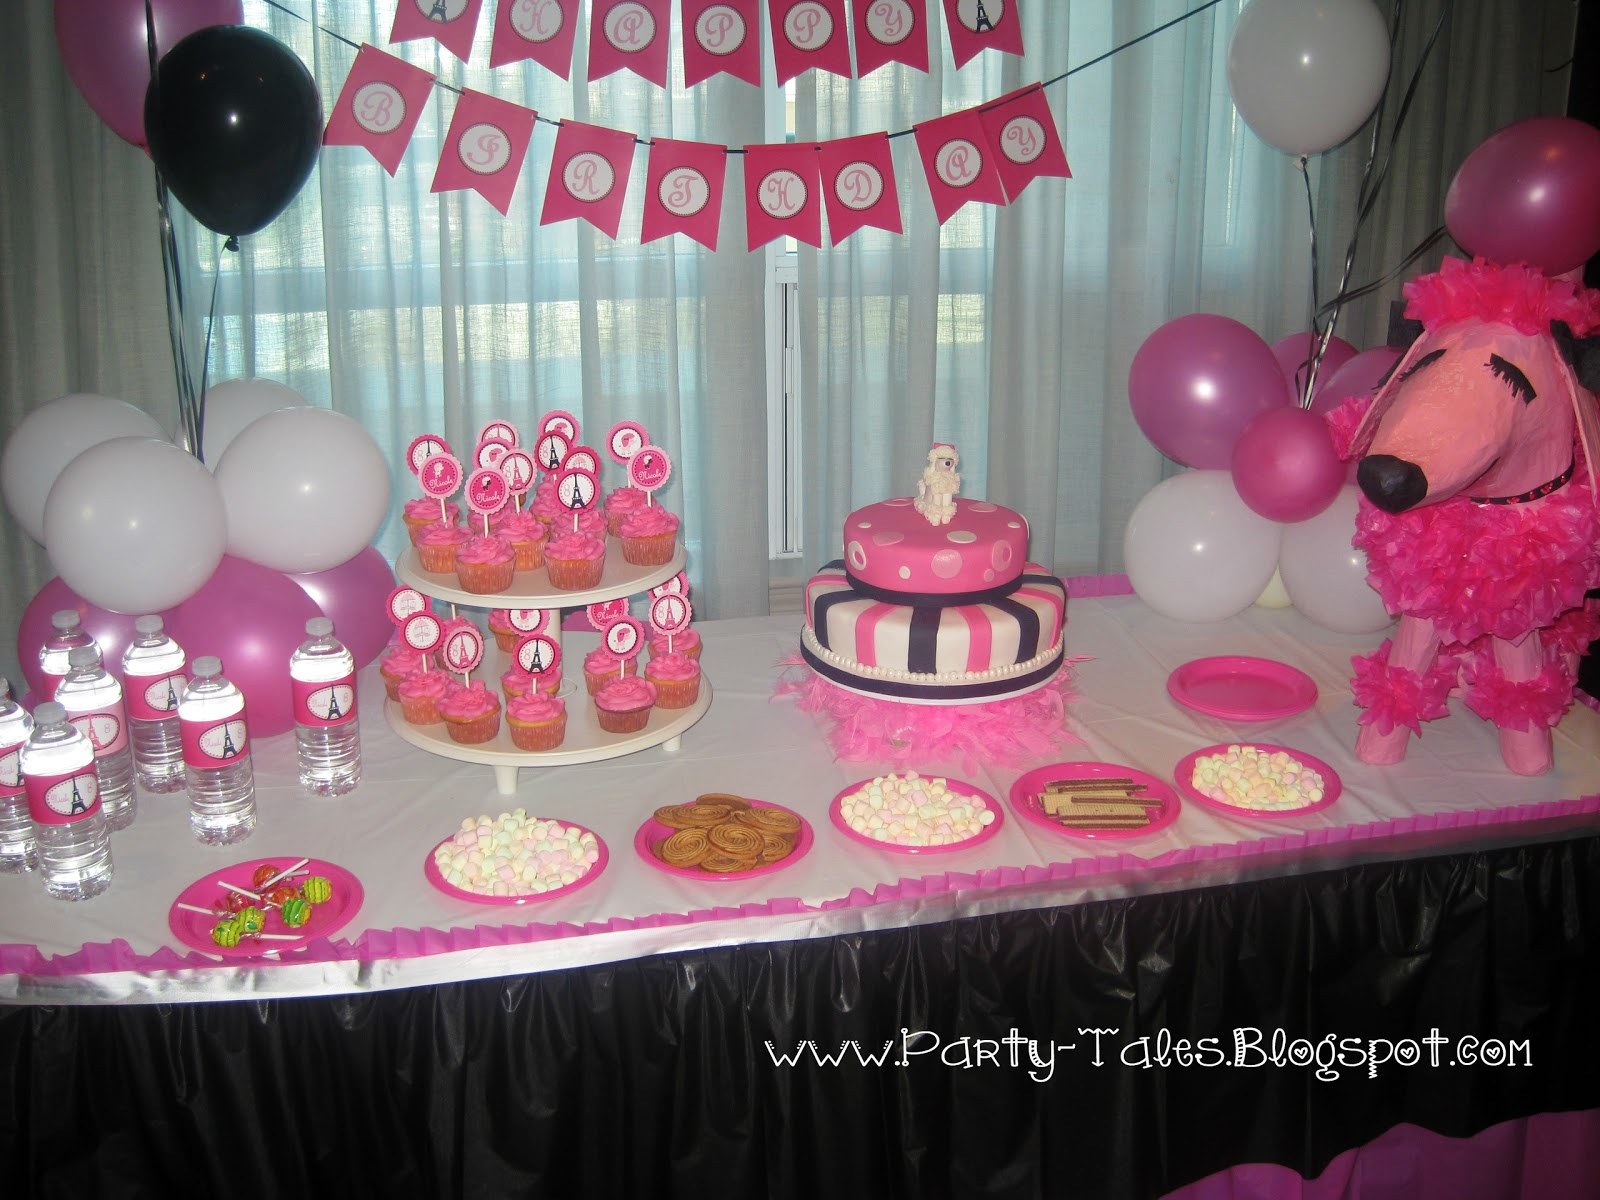 Paris themed birthday party ideas -  Paris Themed Birthday Party Via Kara S Party Ideas Karaspartyideas Poodle Eiffel Tower And Pink Poodles Everywhere Pink White And Black Was The Color